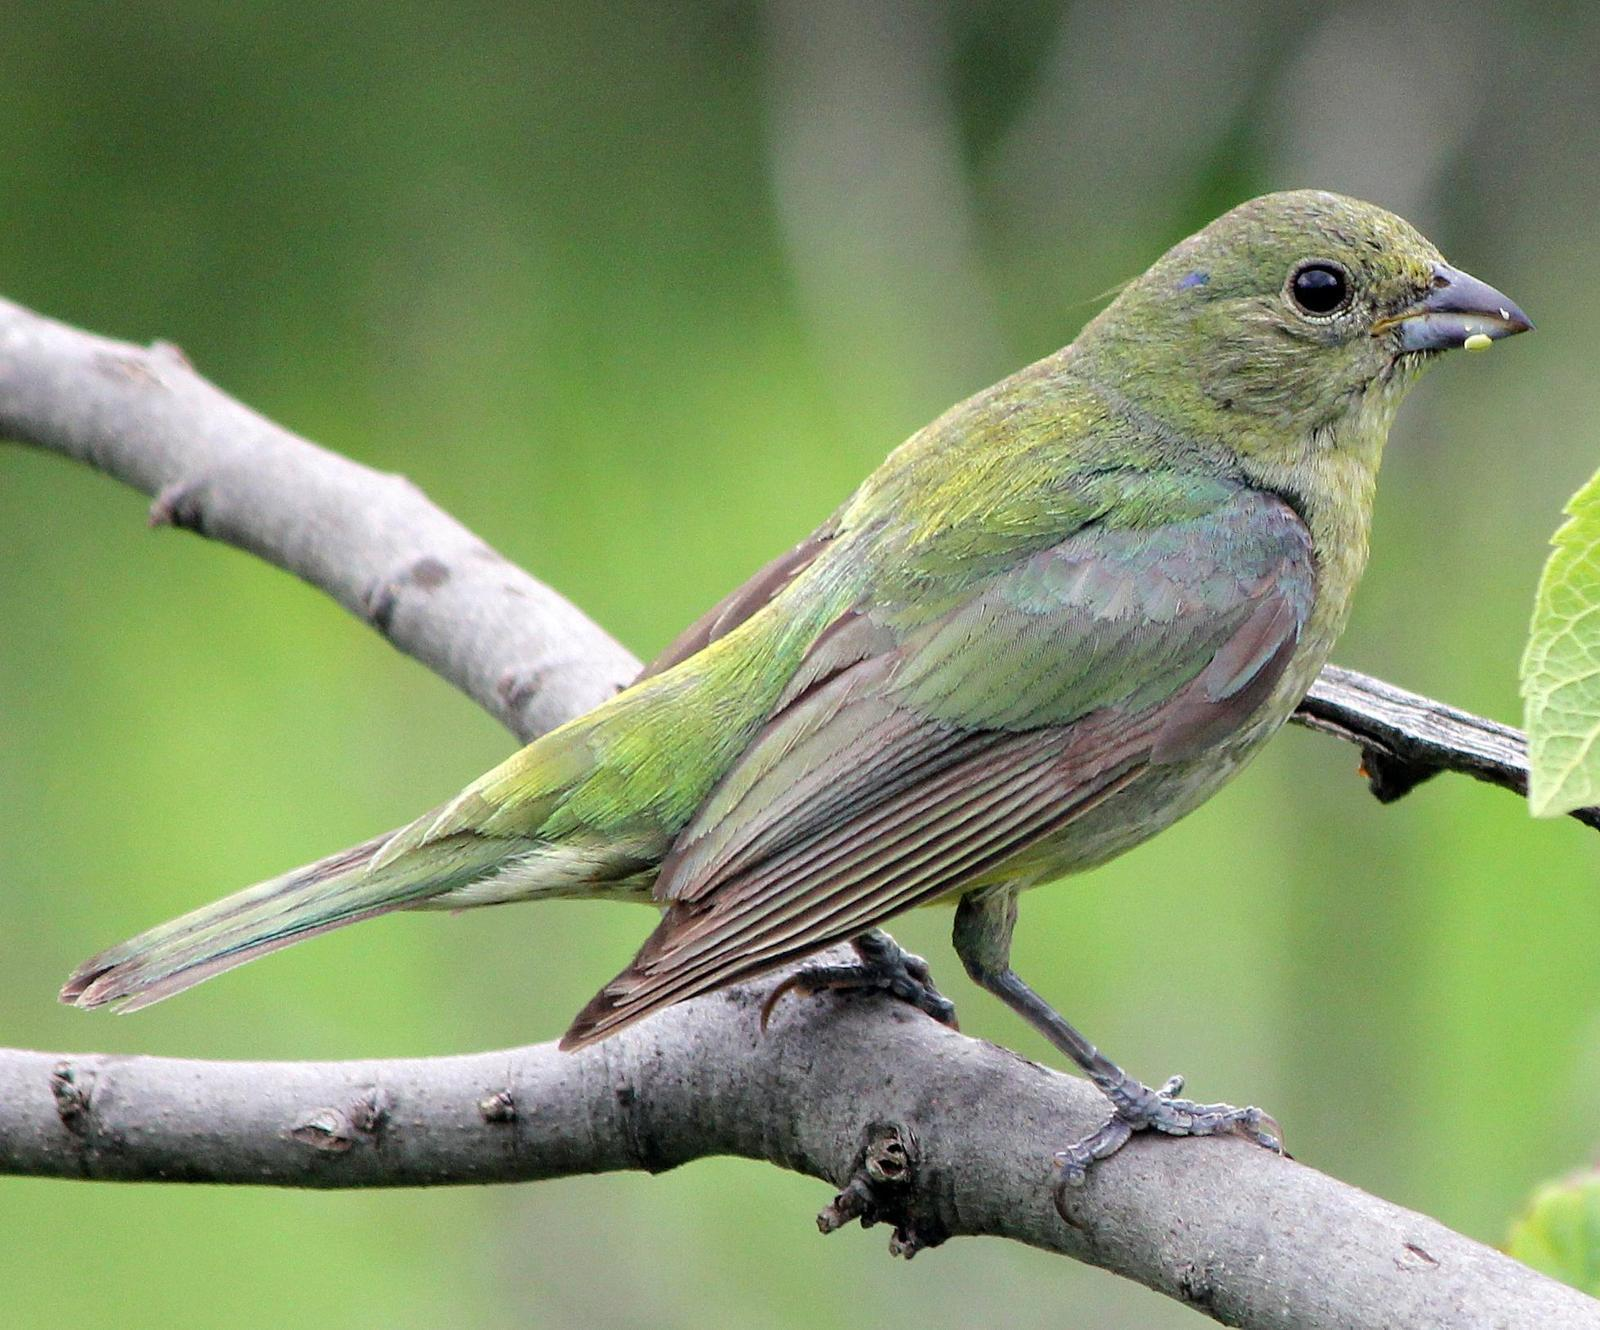 Painted Bunting Photo by Tom Gannon